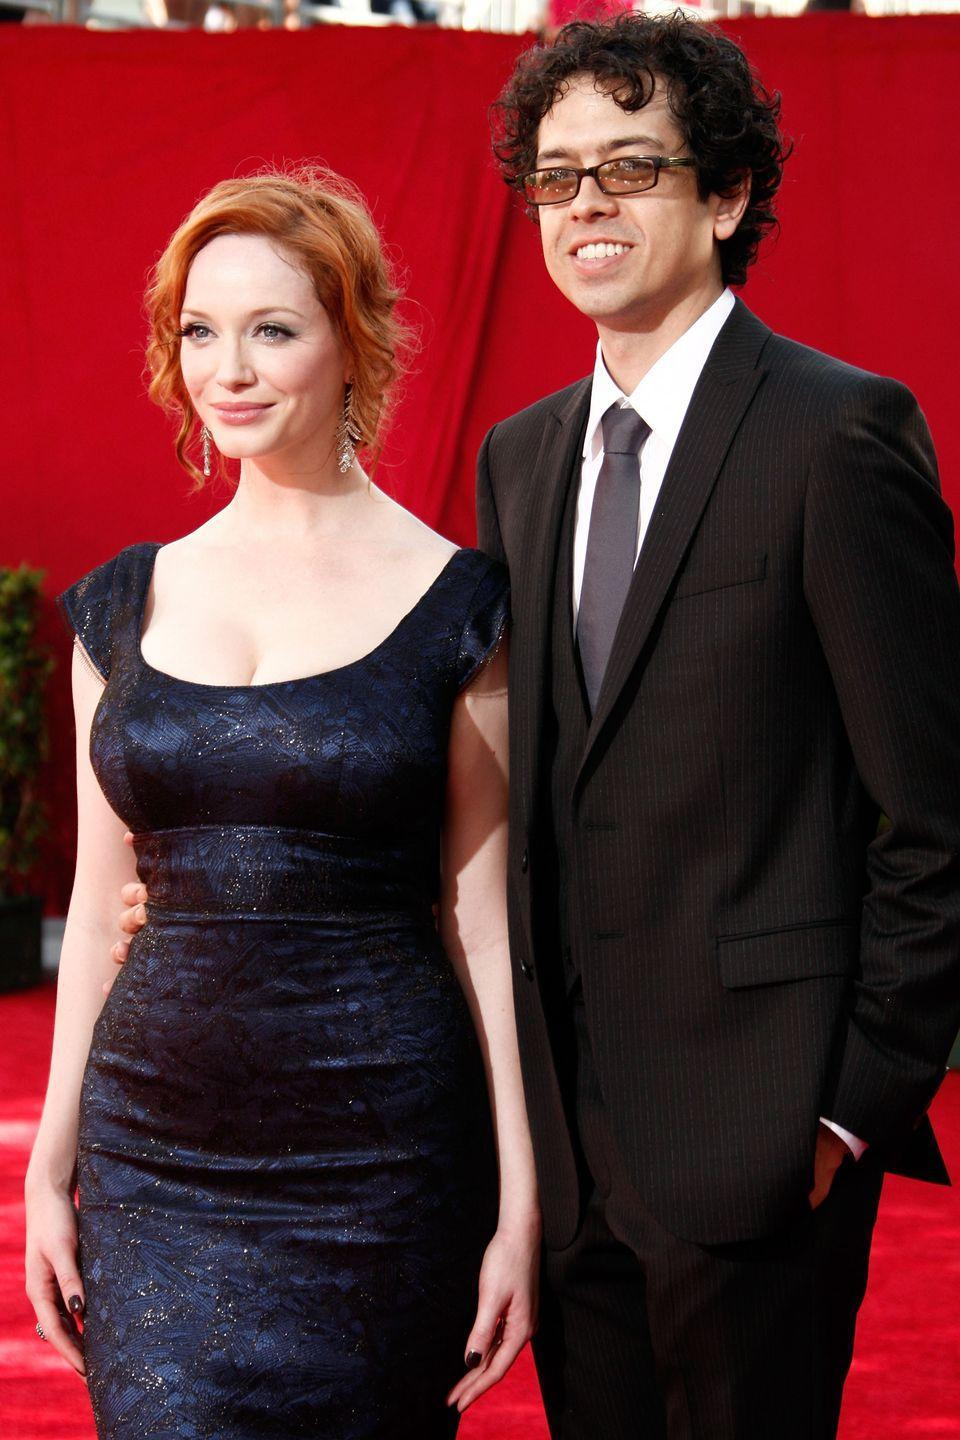 """<p>Christina Hendricks married Geoffrey Arend at the height of her <em>Mad Men</em> fame, but the low-key actors managed to still keep their personal lives under the radar. After 10 years, they announced their split in 2019. """"Twelve years ago we fell in love and became partners. We joined our two amazing families, had countless laughs, made wonderful friends and were blessed with incredible opportunities,"""" they told <a href=""""https://www.usmagazine.com/celebrity-news/pictures/christina-hendricks-and-geoffrey-arend-the-way-they-were/"""" rel=""""nofollow noopener"""" target=""""_blank"""" data-ylk=""""slk:US Weekly"""" class=""""link rapid-noclick-resp"""">US Weekly</a>. """"Today we take our next step together, but on separate paths. We will always be grateful for the love we've shared and will always work together to raise our two beautiful dogs.""""<br></p>"""